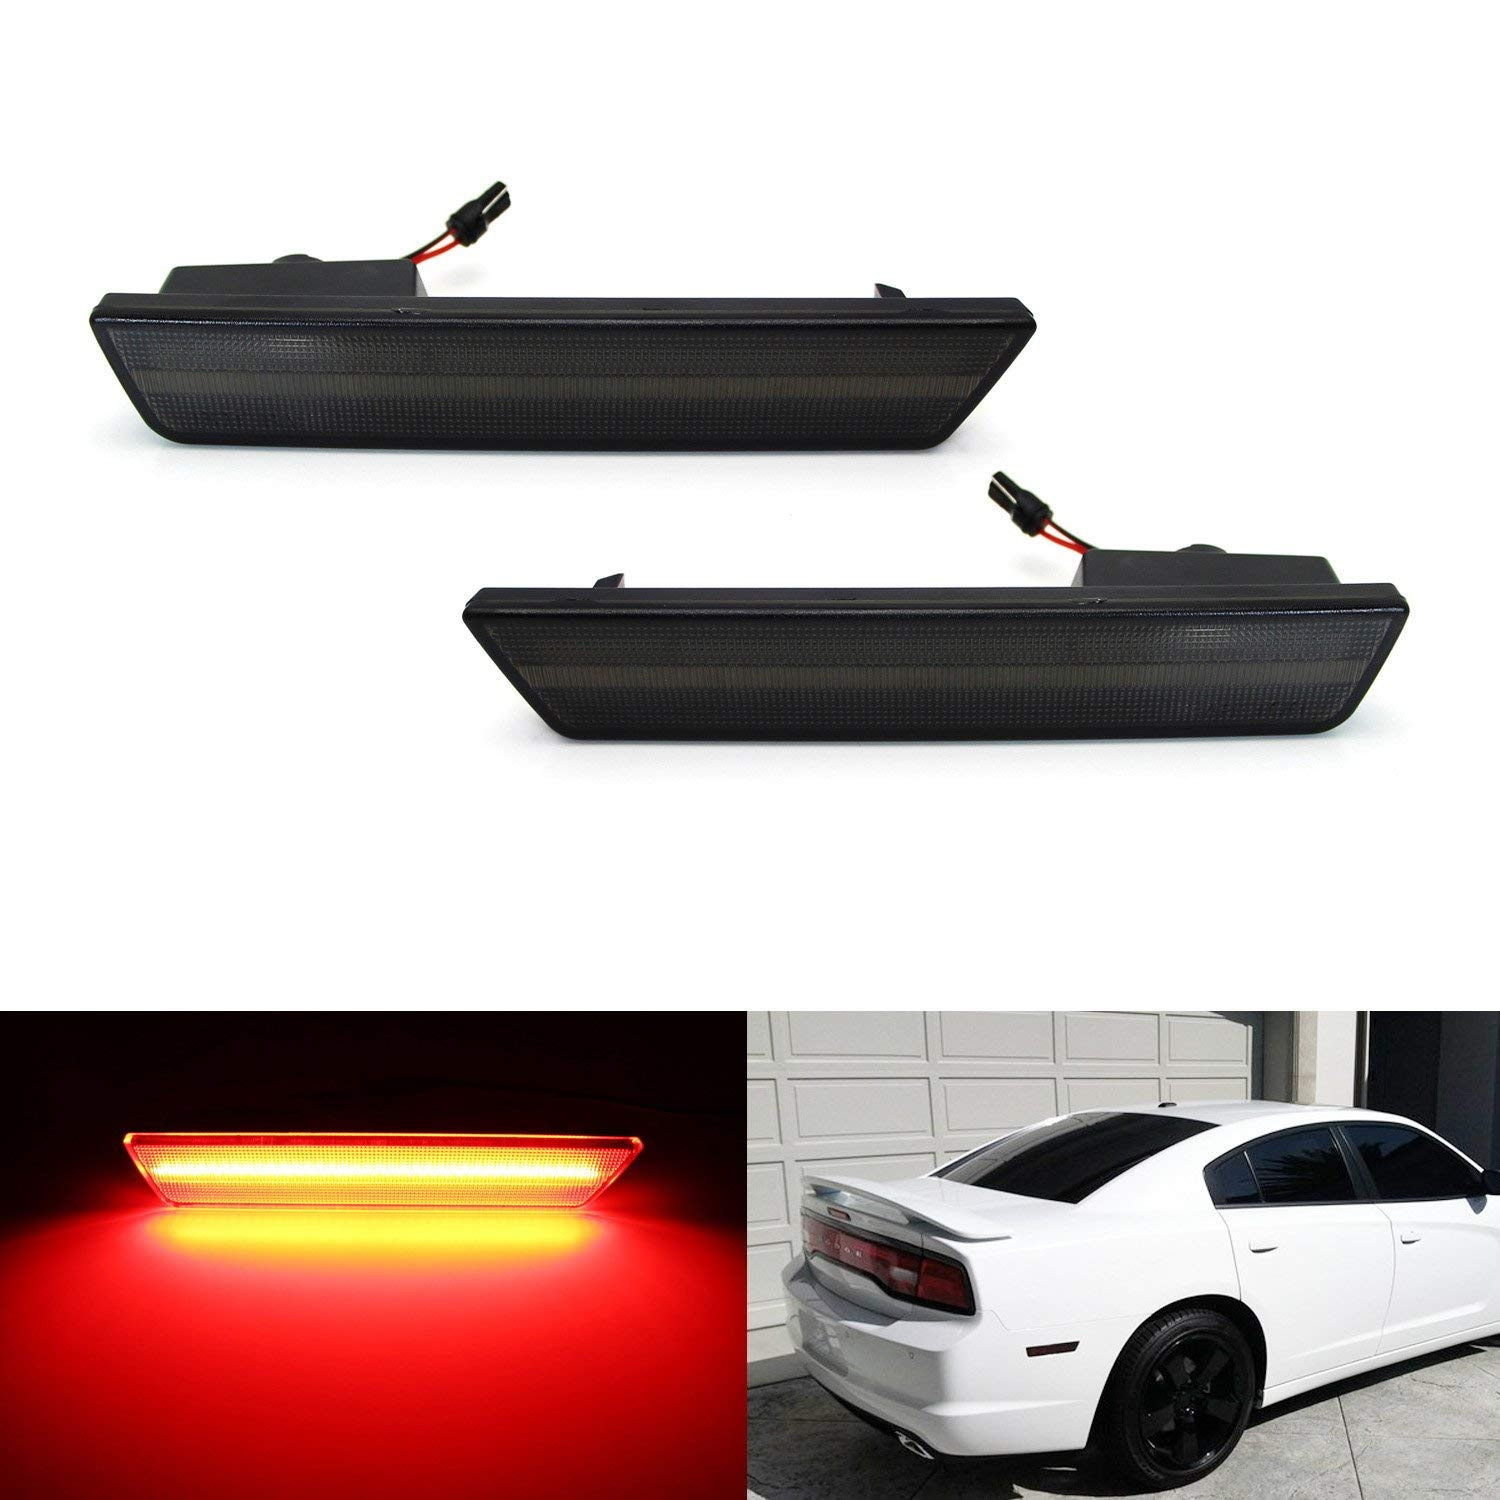 iJDMTOY (2) Smoked Lens Rear Side Marker Lamps with 36-SMD Red LED Lights For 2008-2014 Dodge Challenger, 2011-2014 Dodge Charrger